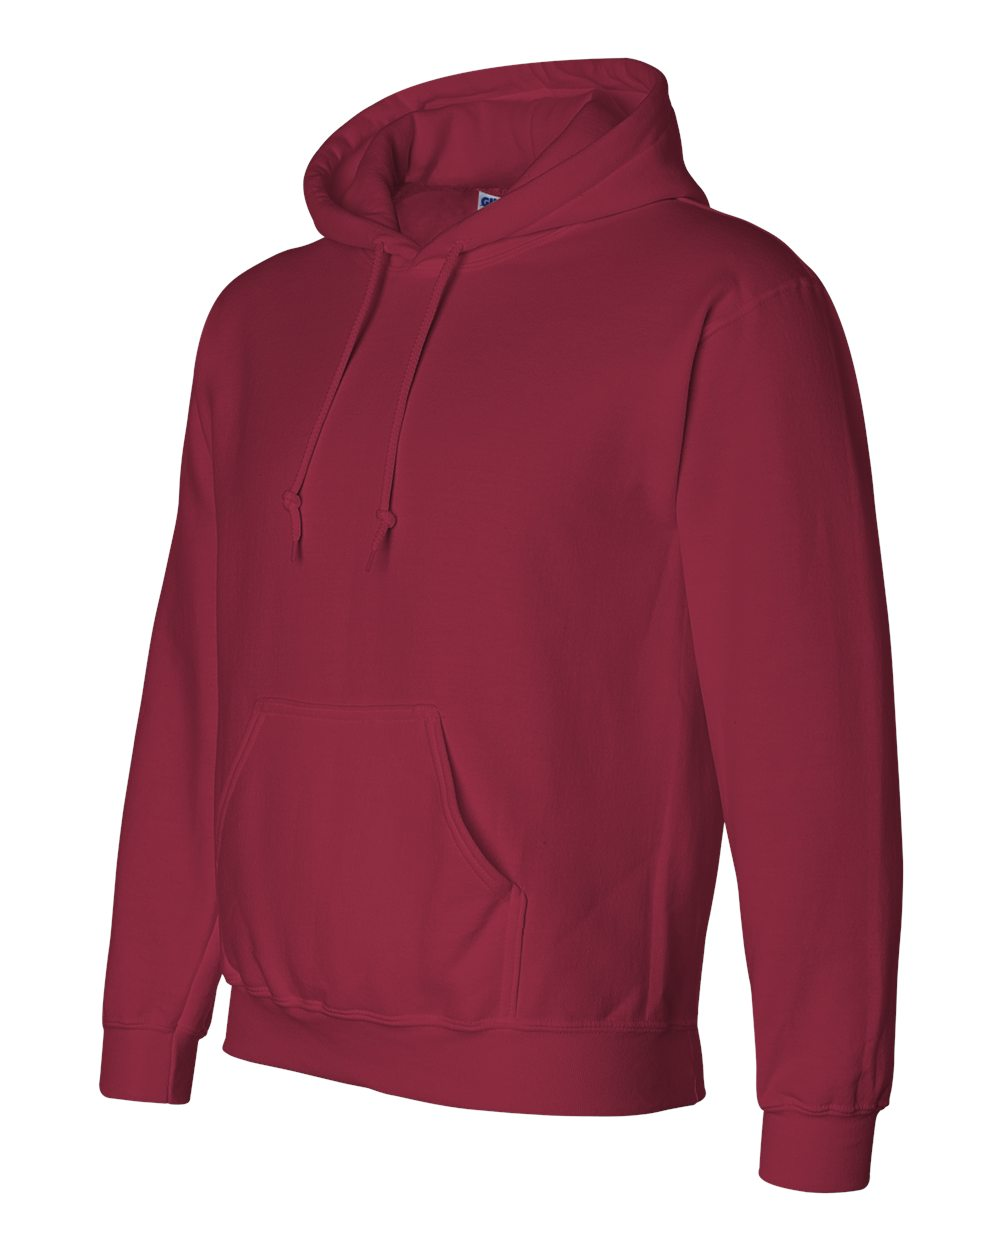 Gildan Ultra Blend Hooded sweater GIL12500 Cardinal Red